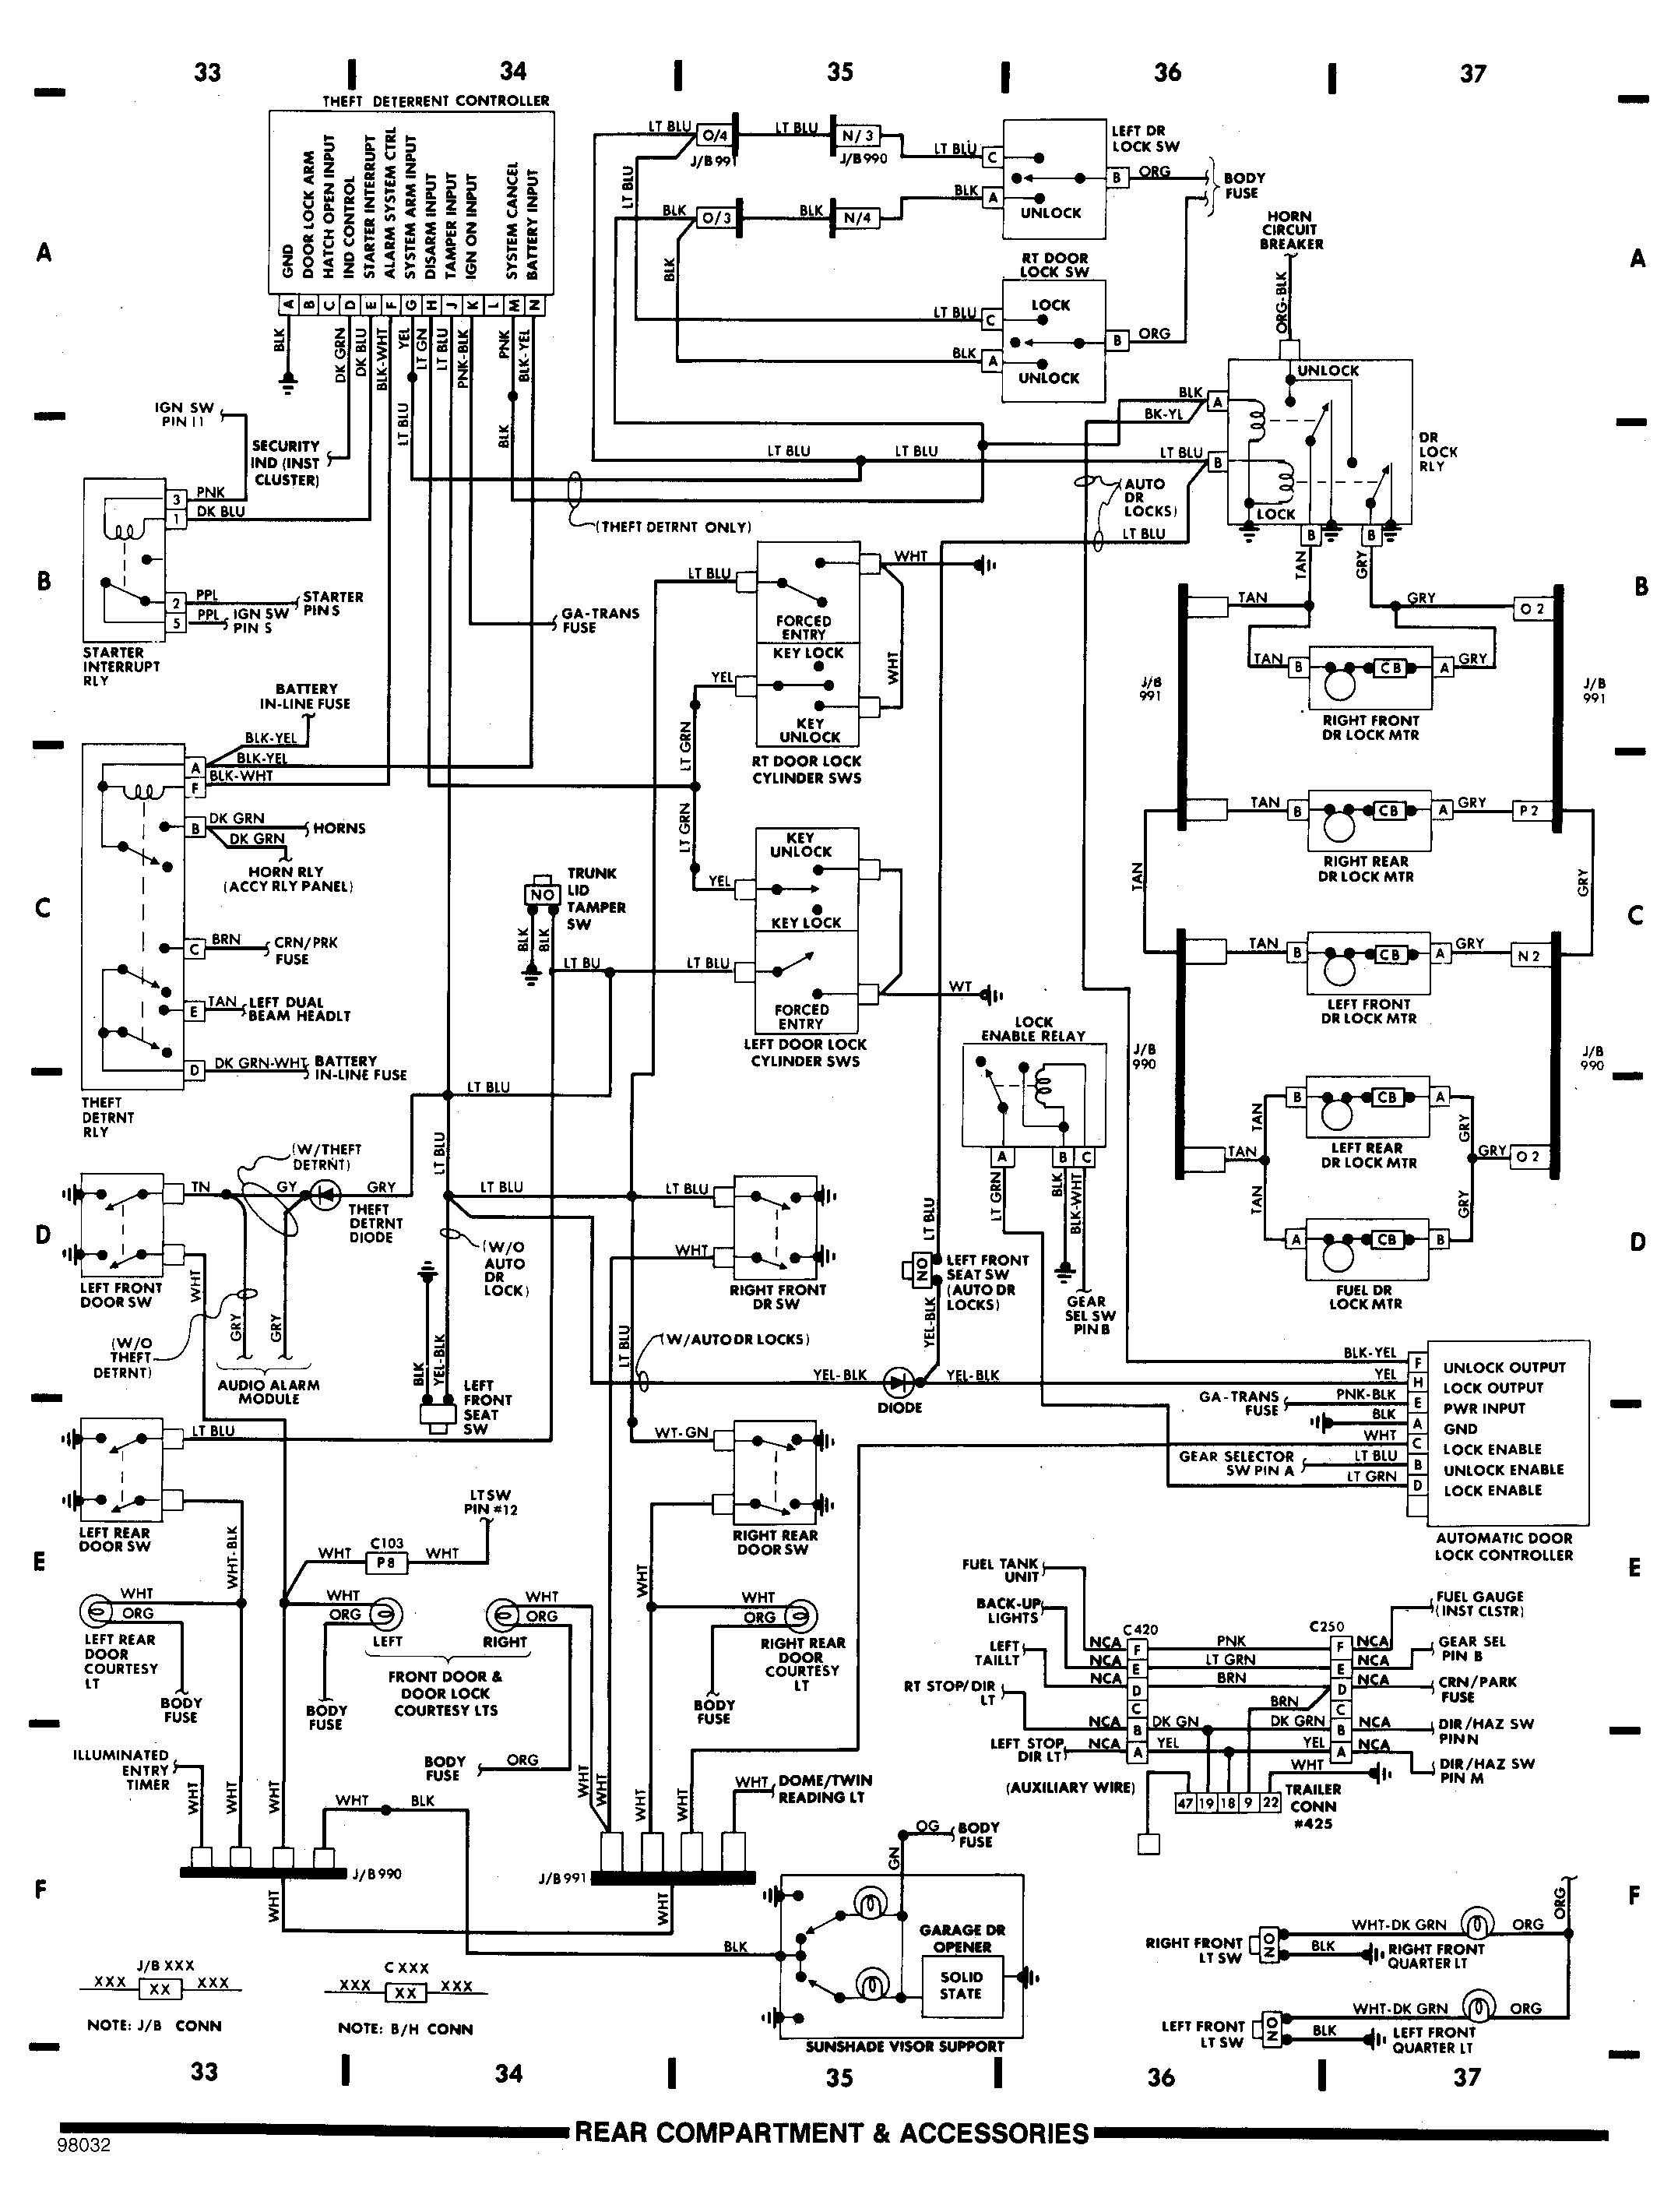 Wiring Diagrams | on 1996 cadillac wiring diagram, 1962 cadillac wiring diagram, 1970 cadillac wiring diagram, 1991 cadillac parts catalog, 1963 cadillac wiring diagram, 1991 cadillac engine problems, 1959 cadillac wiring diagram, 1941 cadillac wiring diagram, 1956 cadillac wiring diagram, 1964 cadillac wiring diagram,